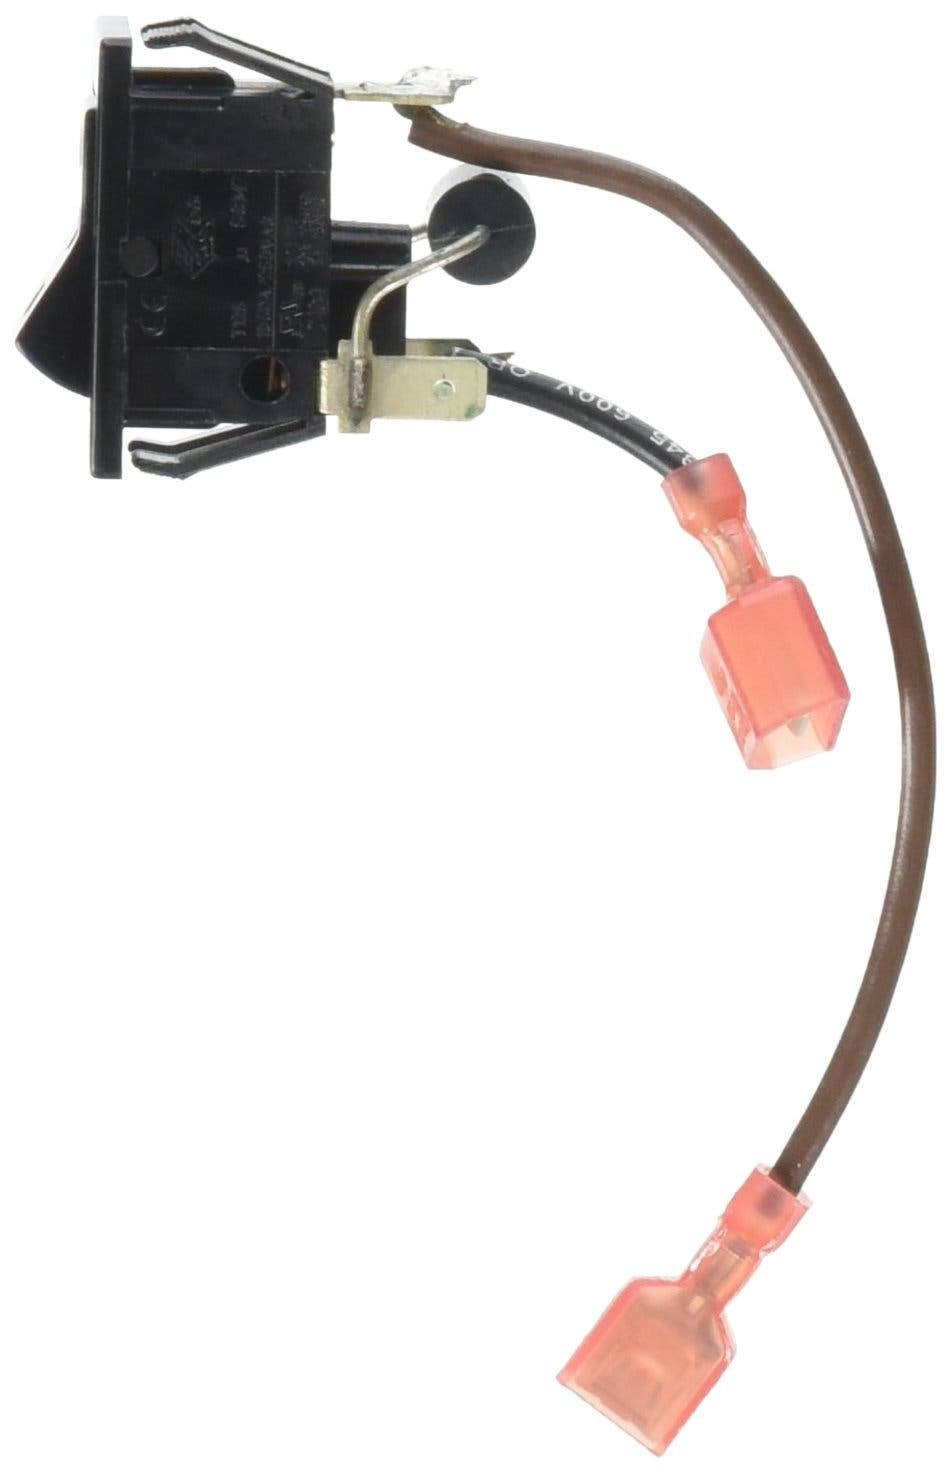 oreck xl 2 speed 3 way power switch with leads - 7532001 2 speed ac motor wiring diagram oreck wiring 2 speed #9